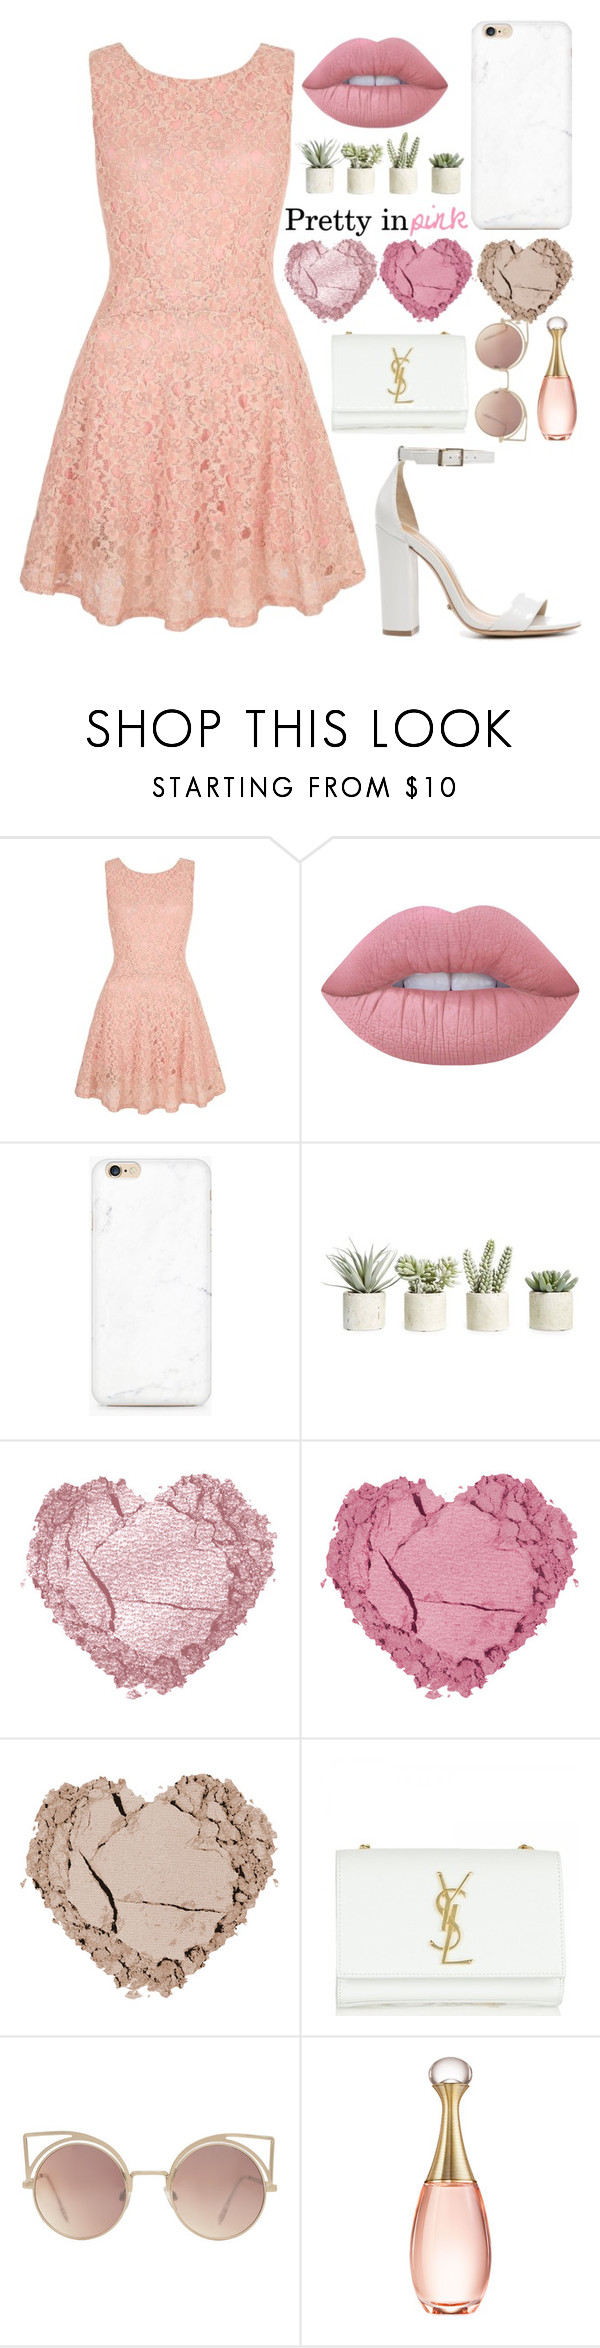 """""""Chic Coral"""" by lilleopard123 ❤ liked on Polyvore featuring Yumi, Lime Crime, Allstate Floral, Yves Saint Laurent, MANGO, Christian Dior and Schutz"""